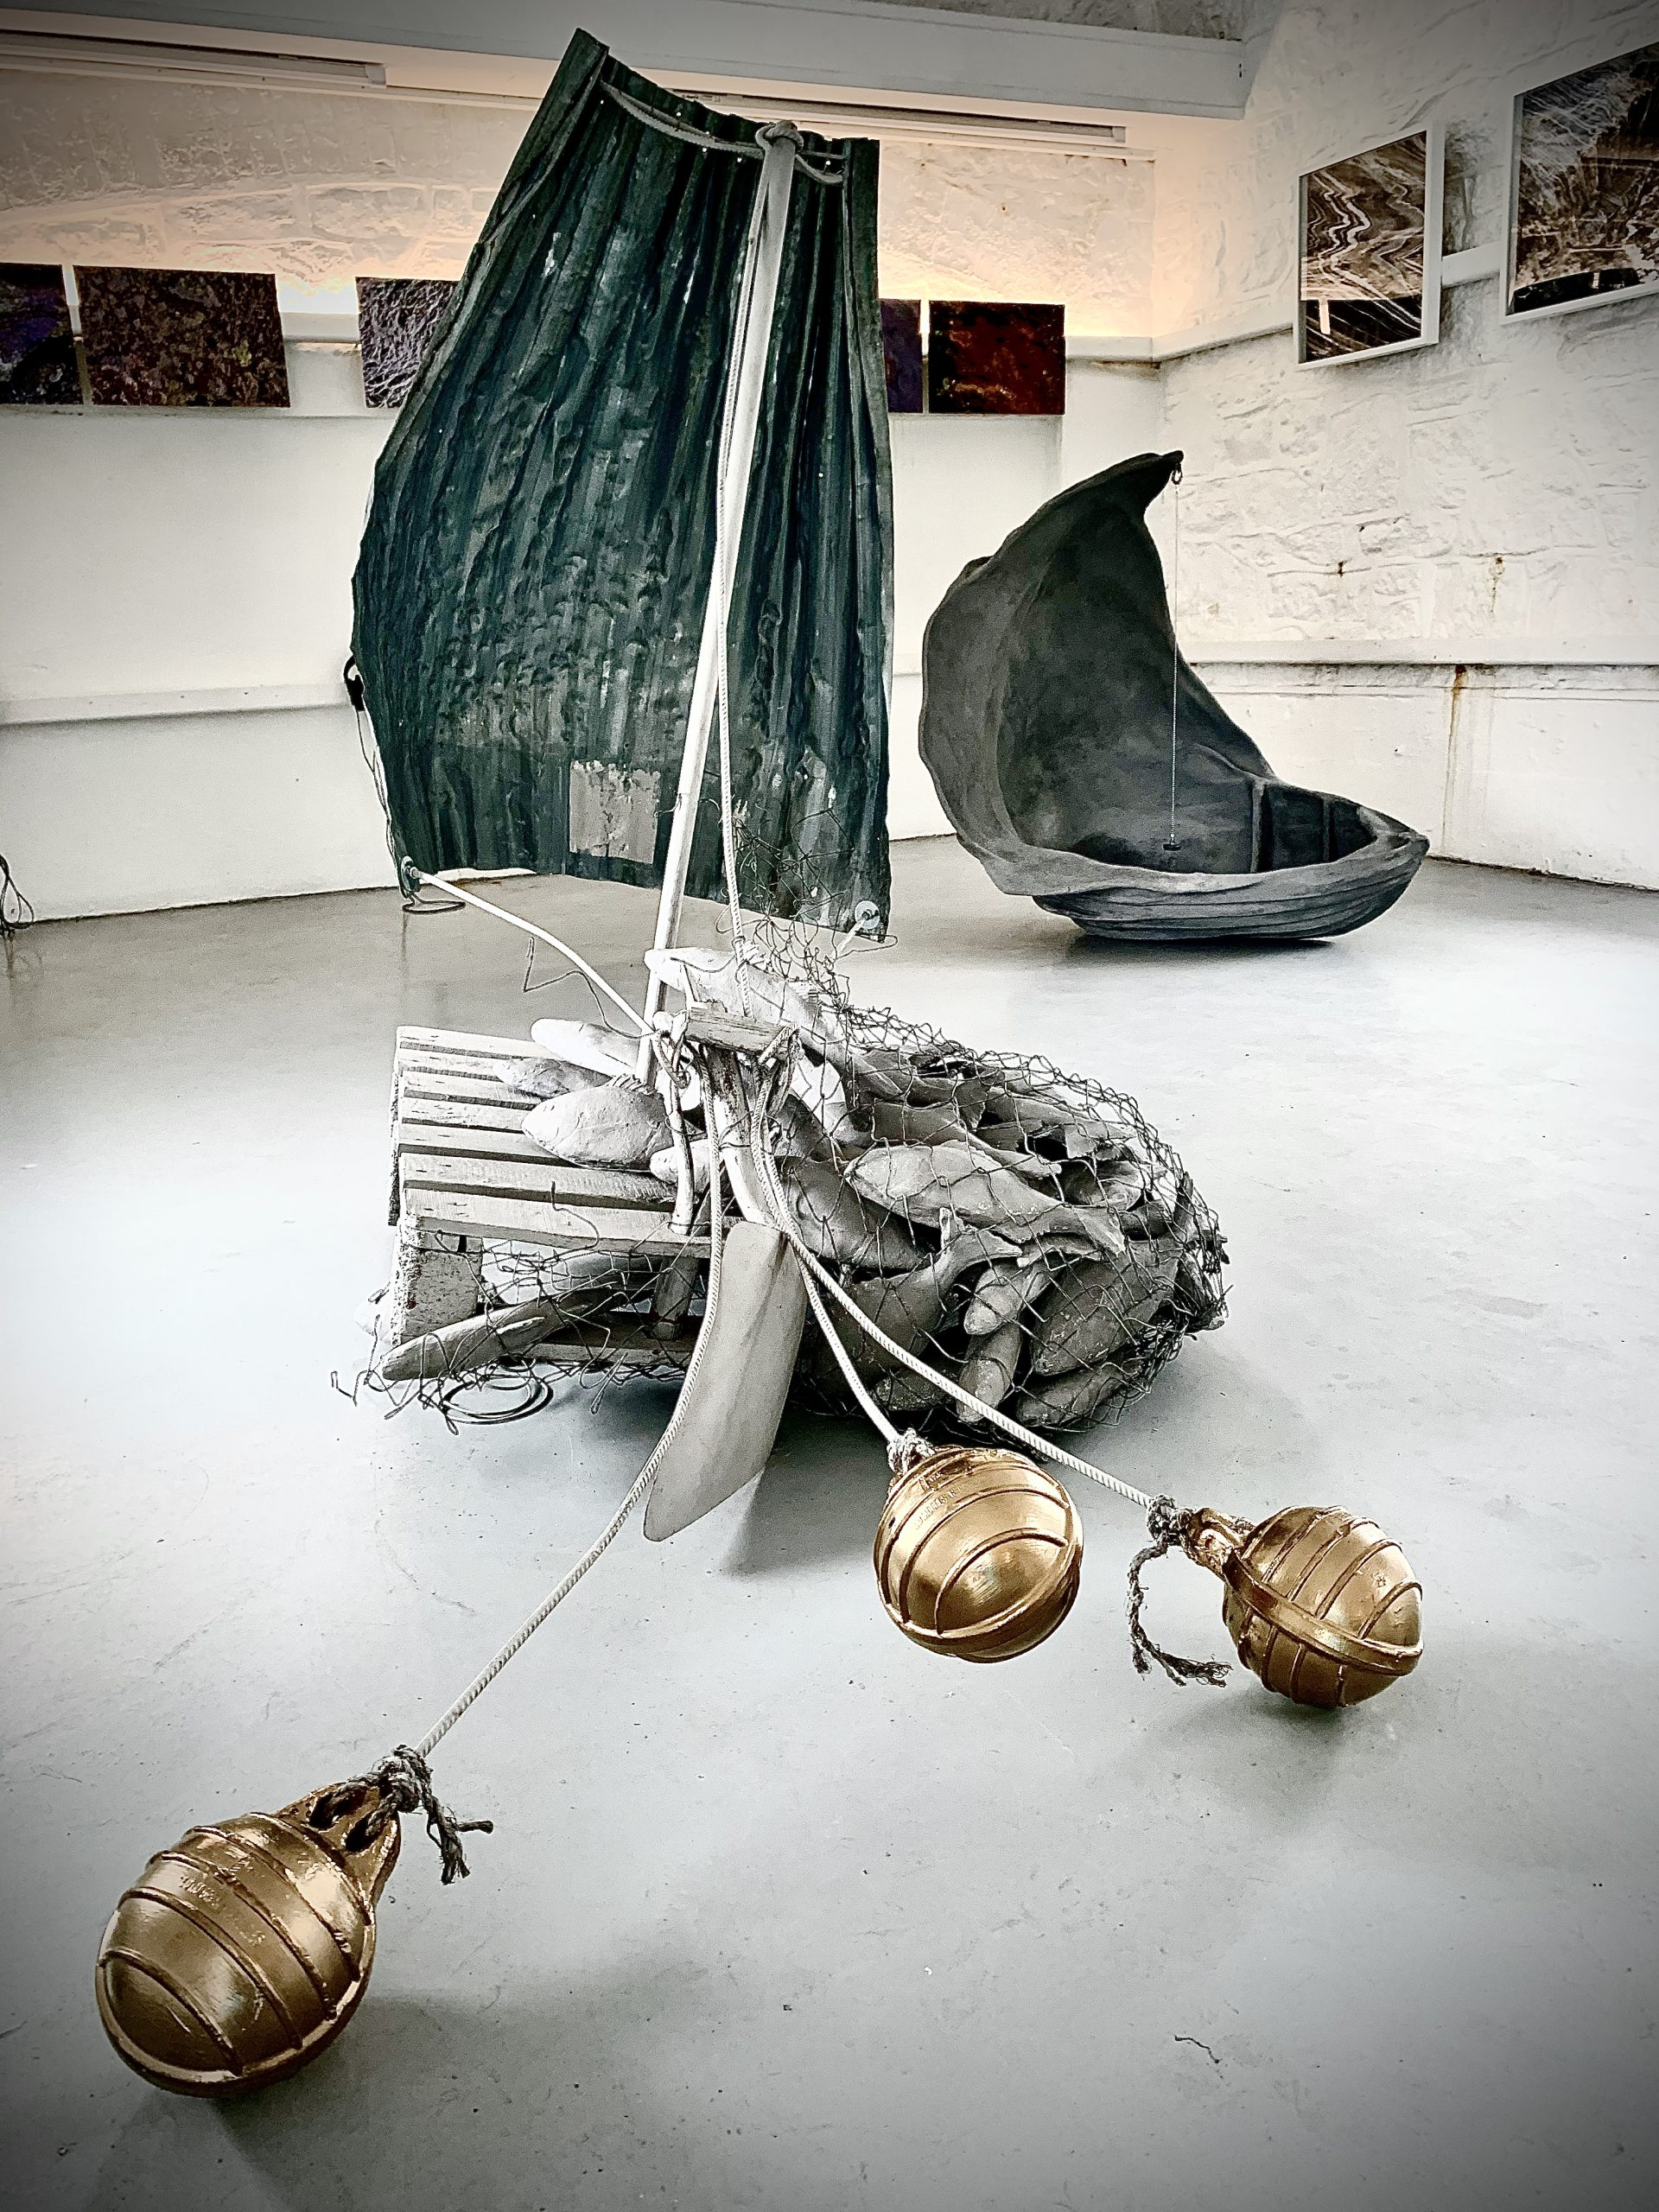 An installation floor piece which has a palette engulfed by multiple grey sculptural fish. There are gold metallic anchors petruding into the forefront of the picture.